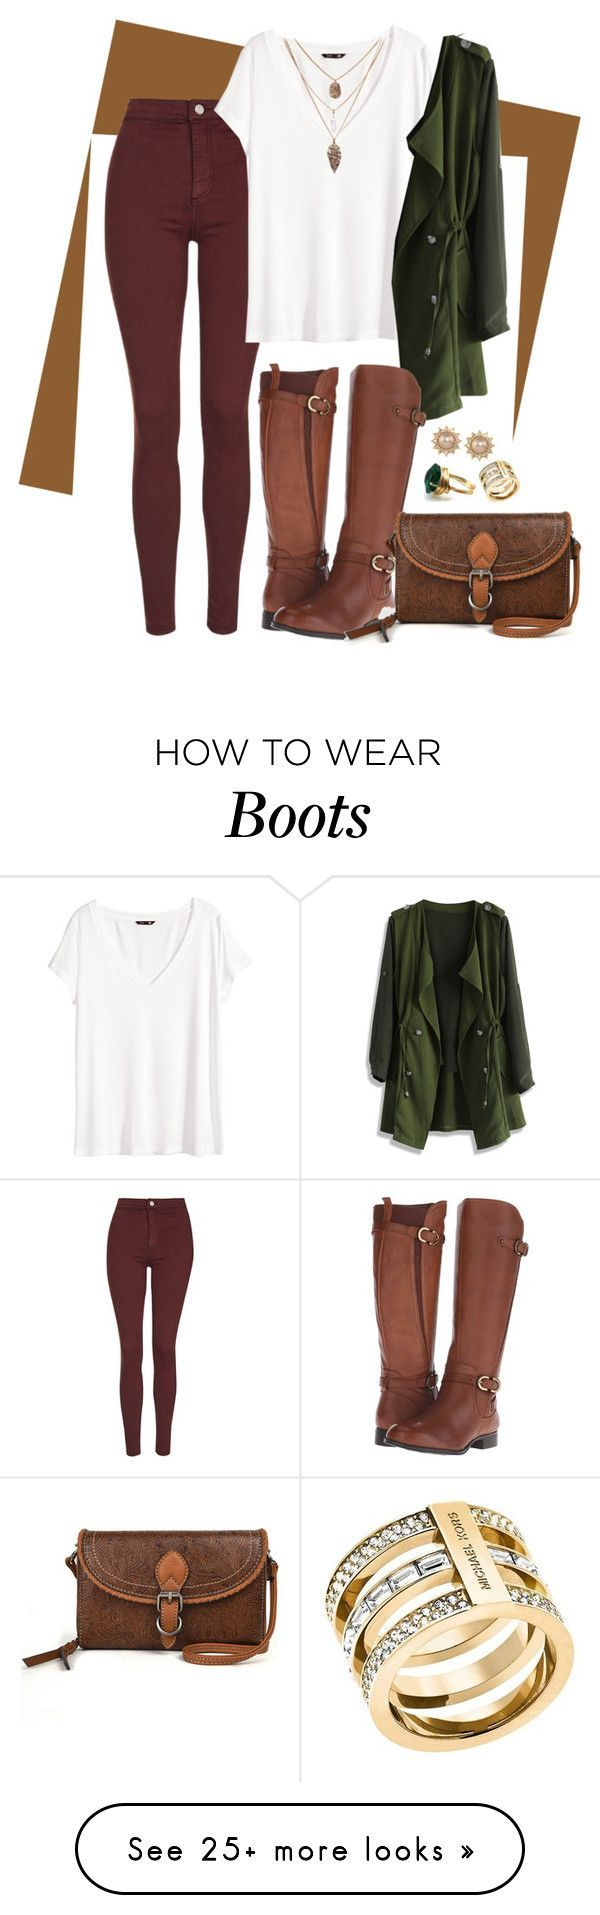 How to wear Boots \